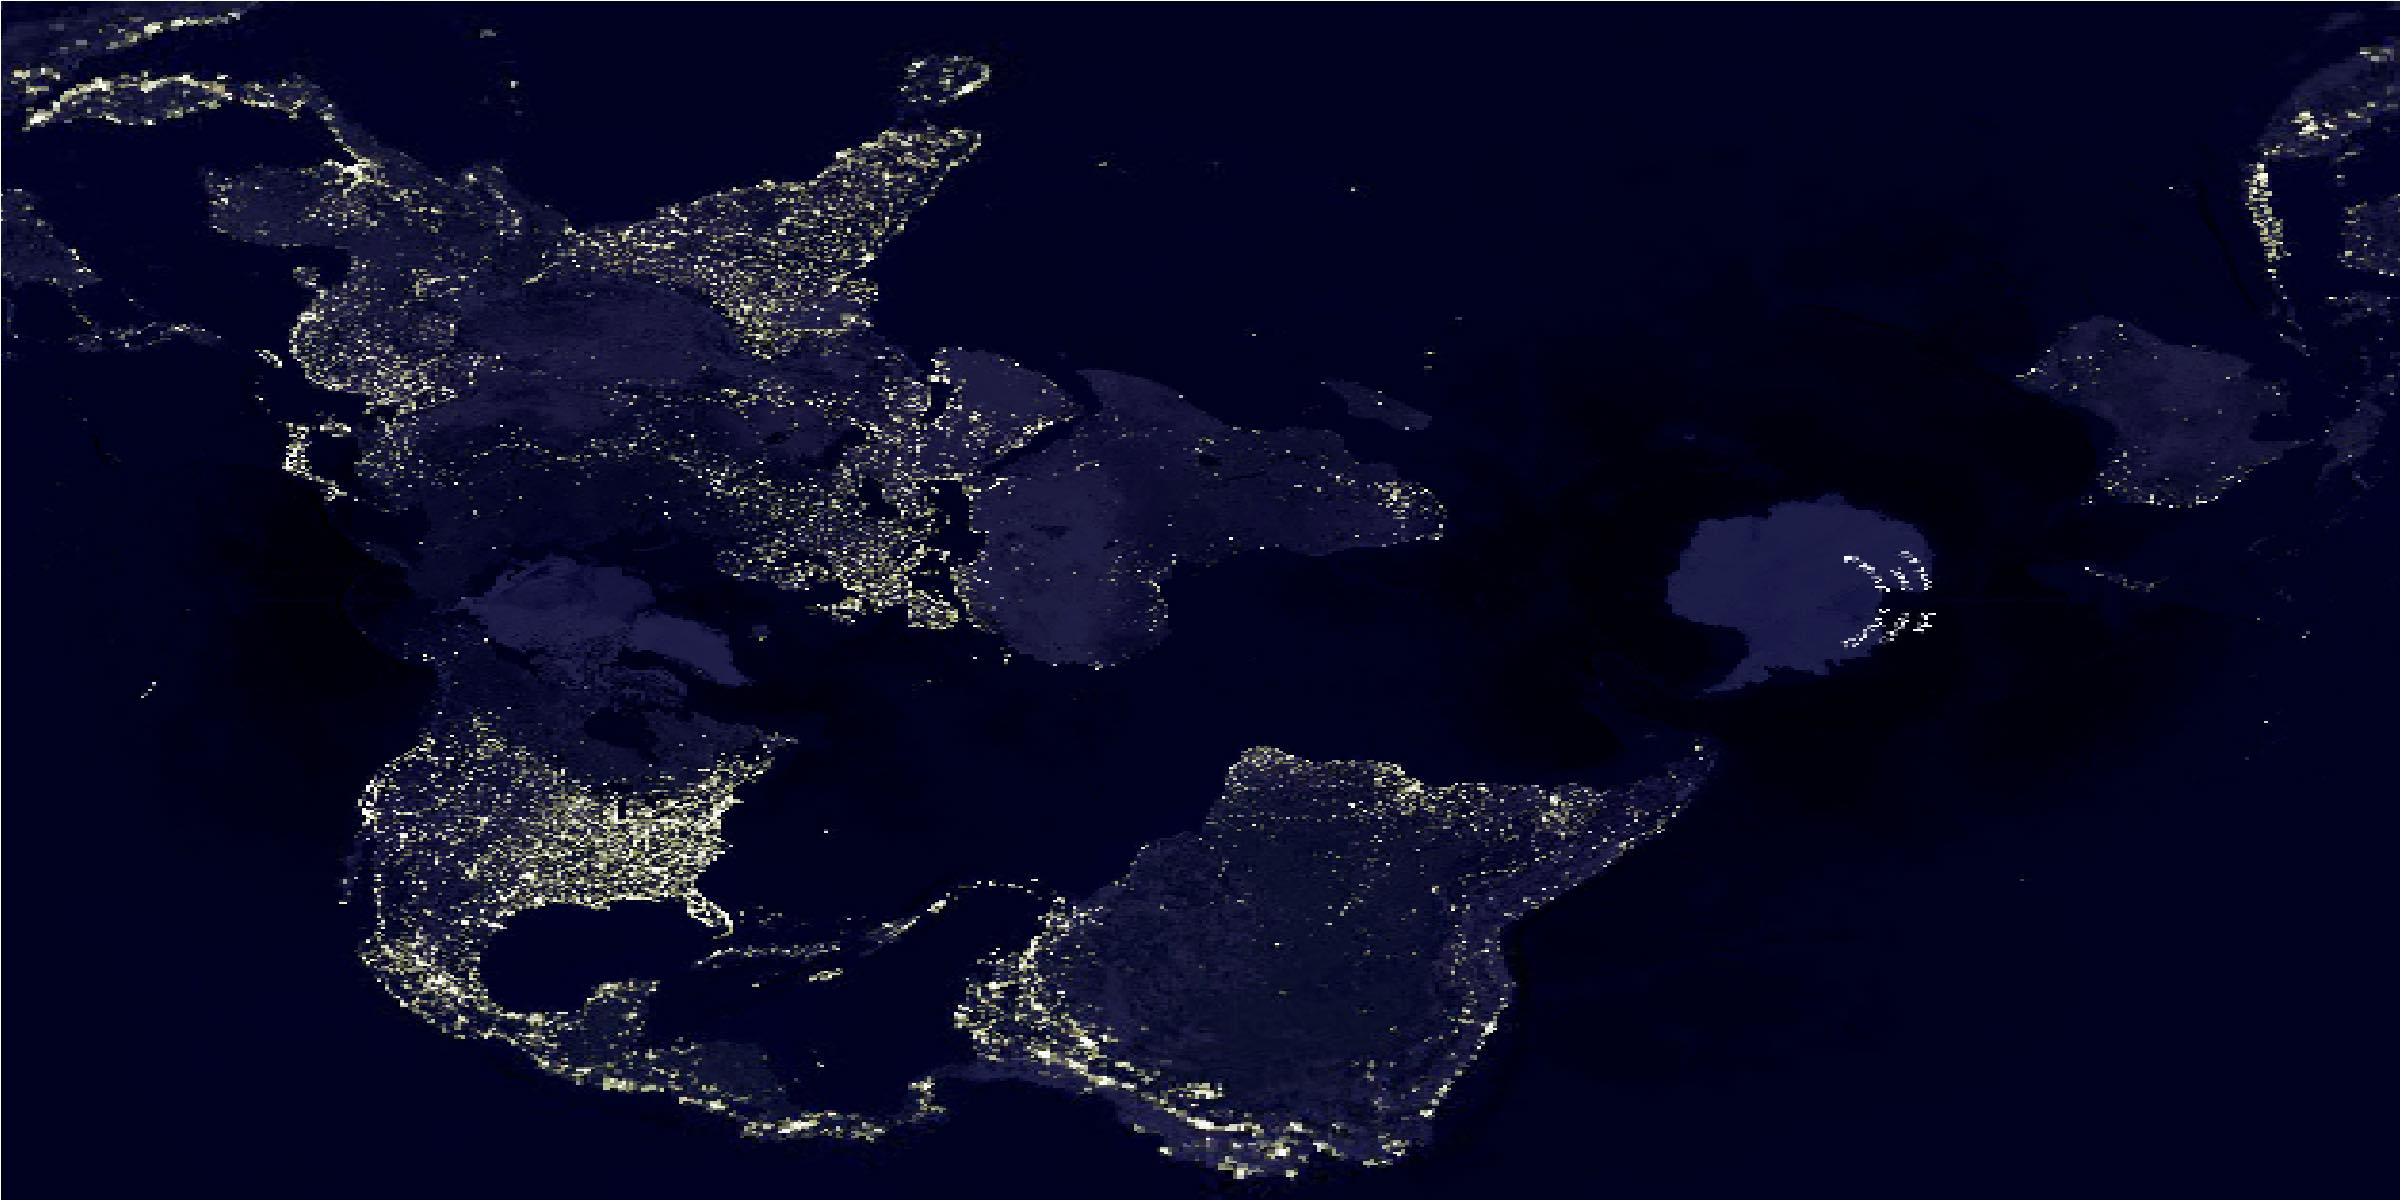 Transverse Mercator projection of the world at night